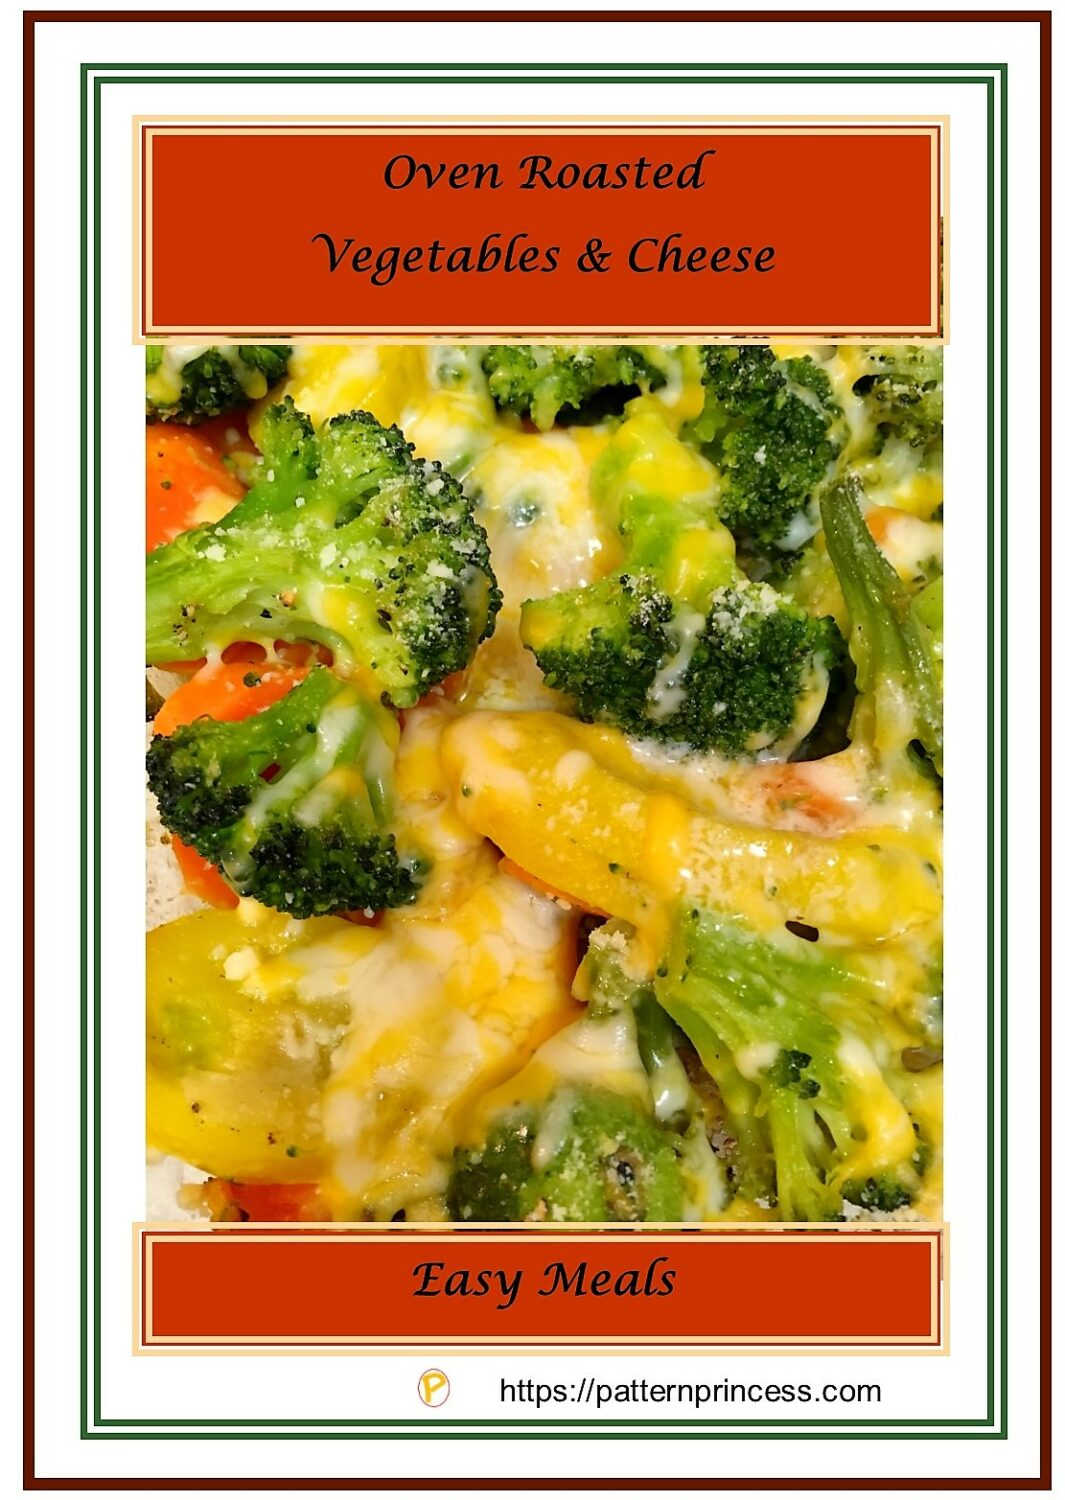 Oven Roasted Vegetables and Cheese 1